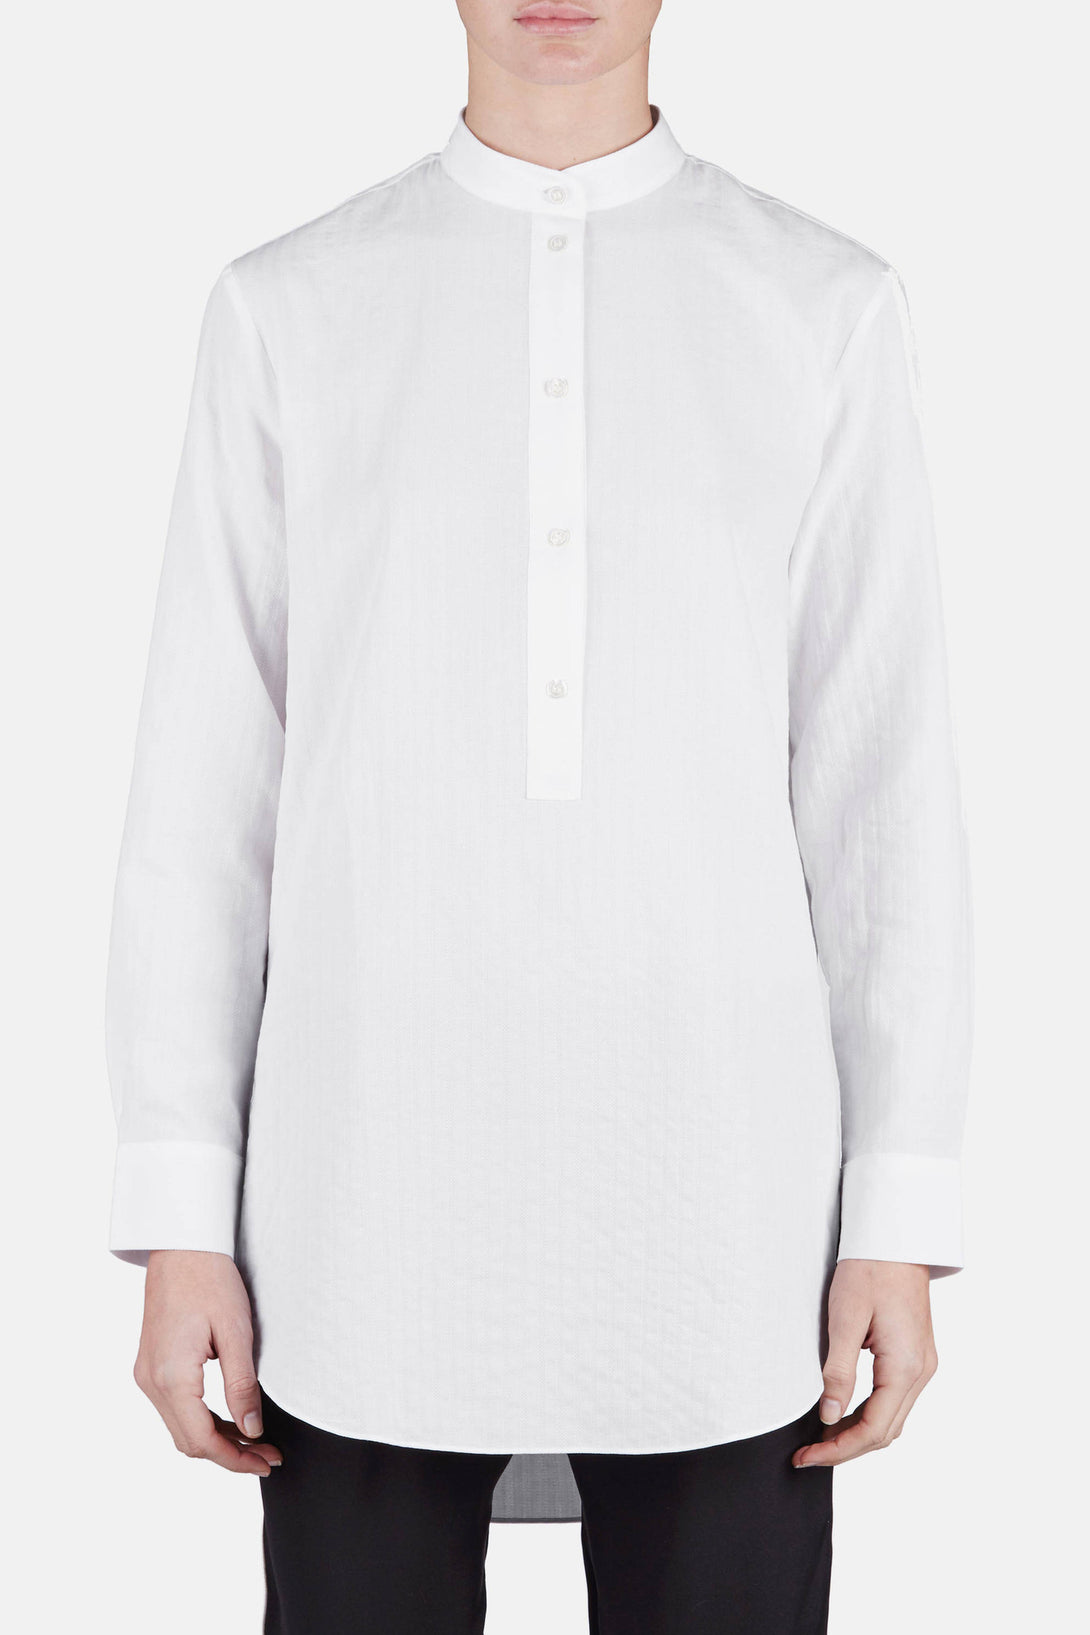 Galvin Shirt - White